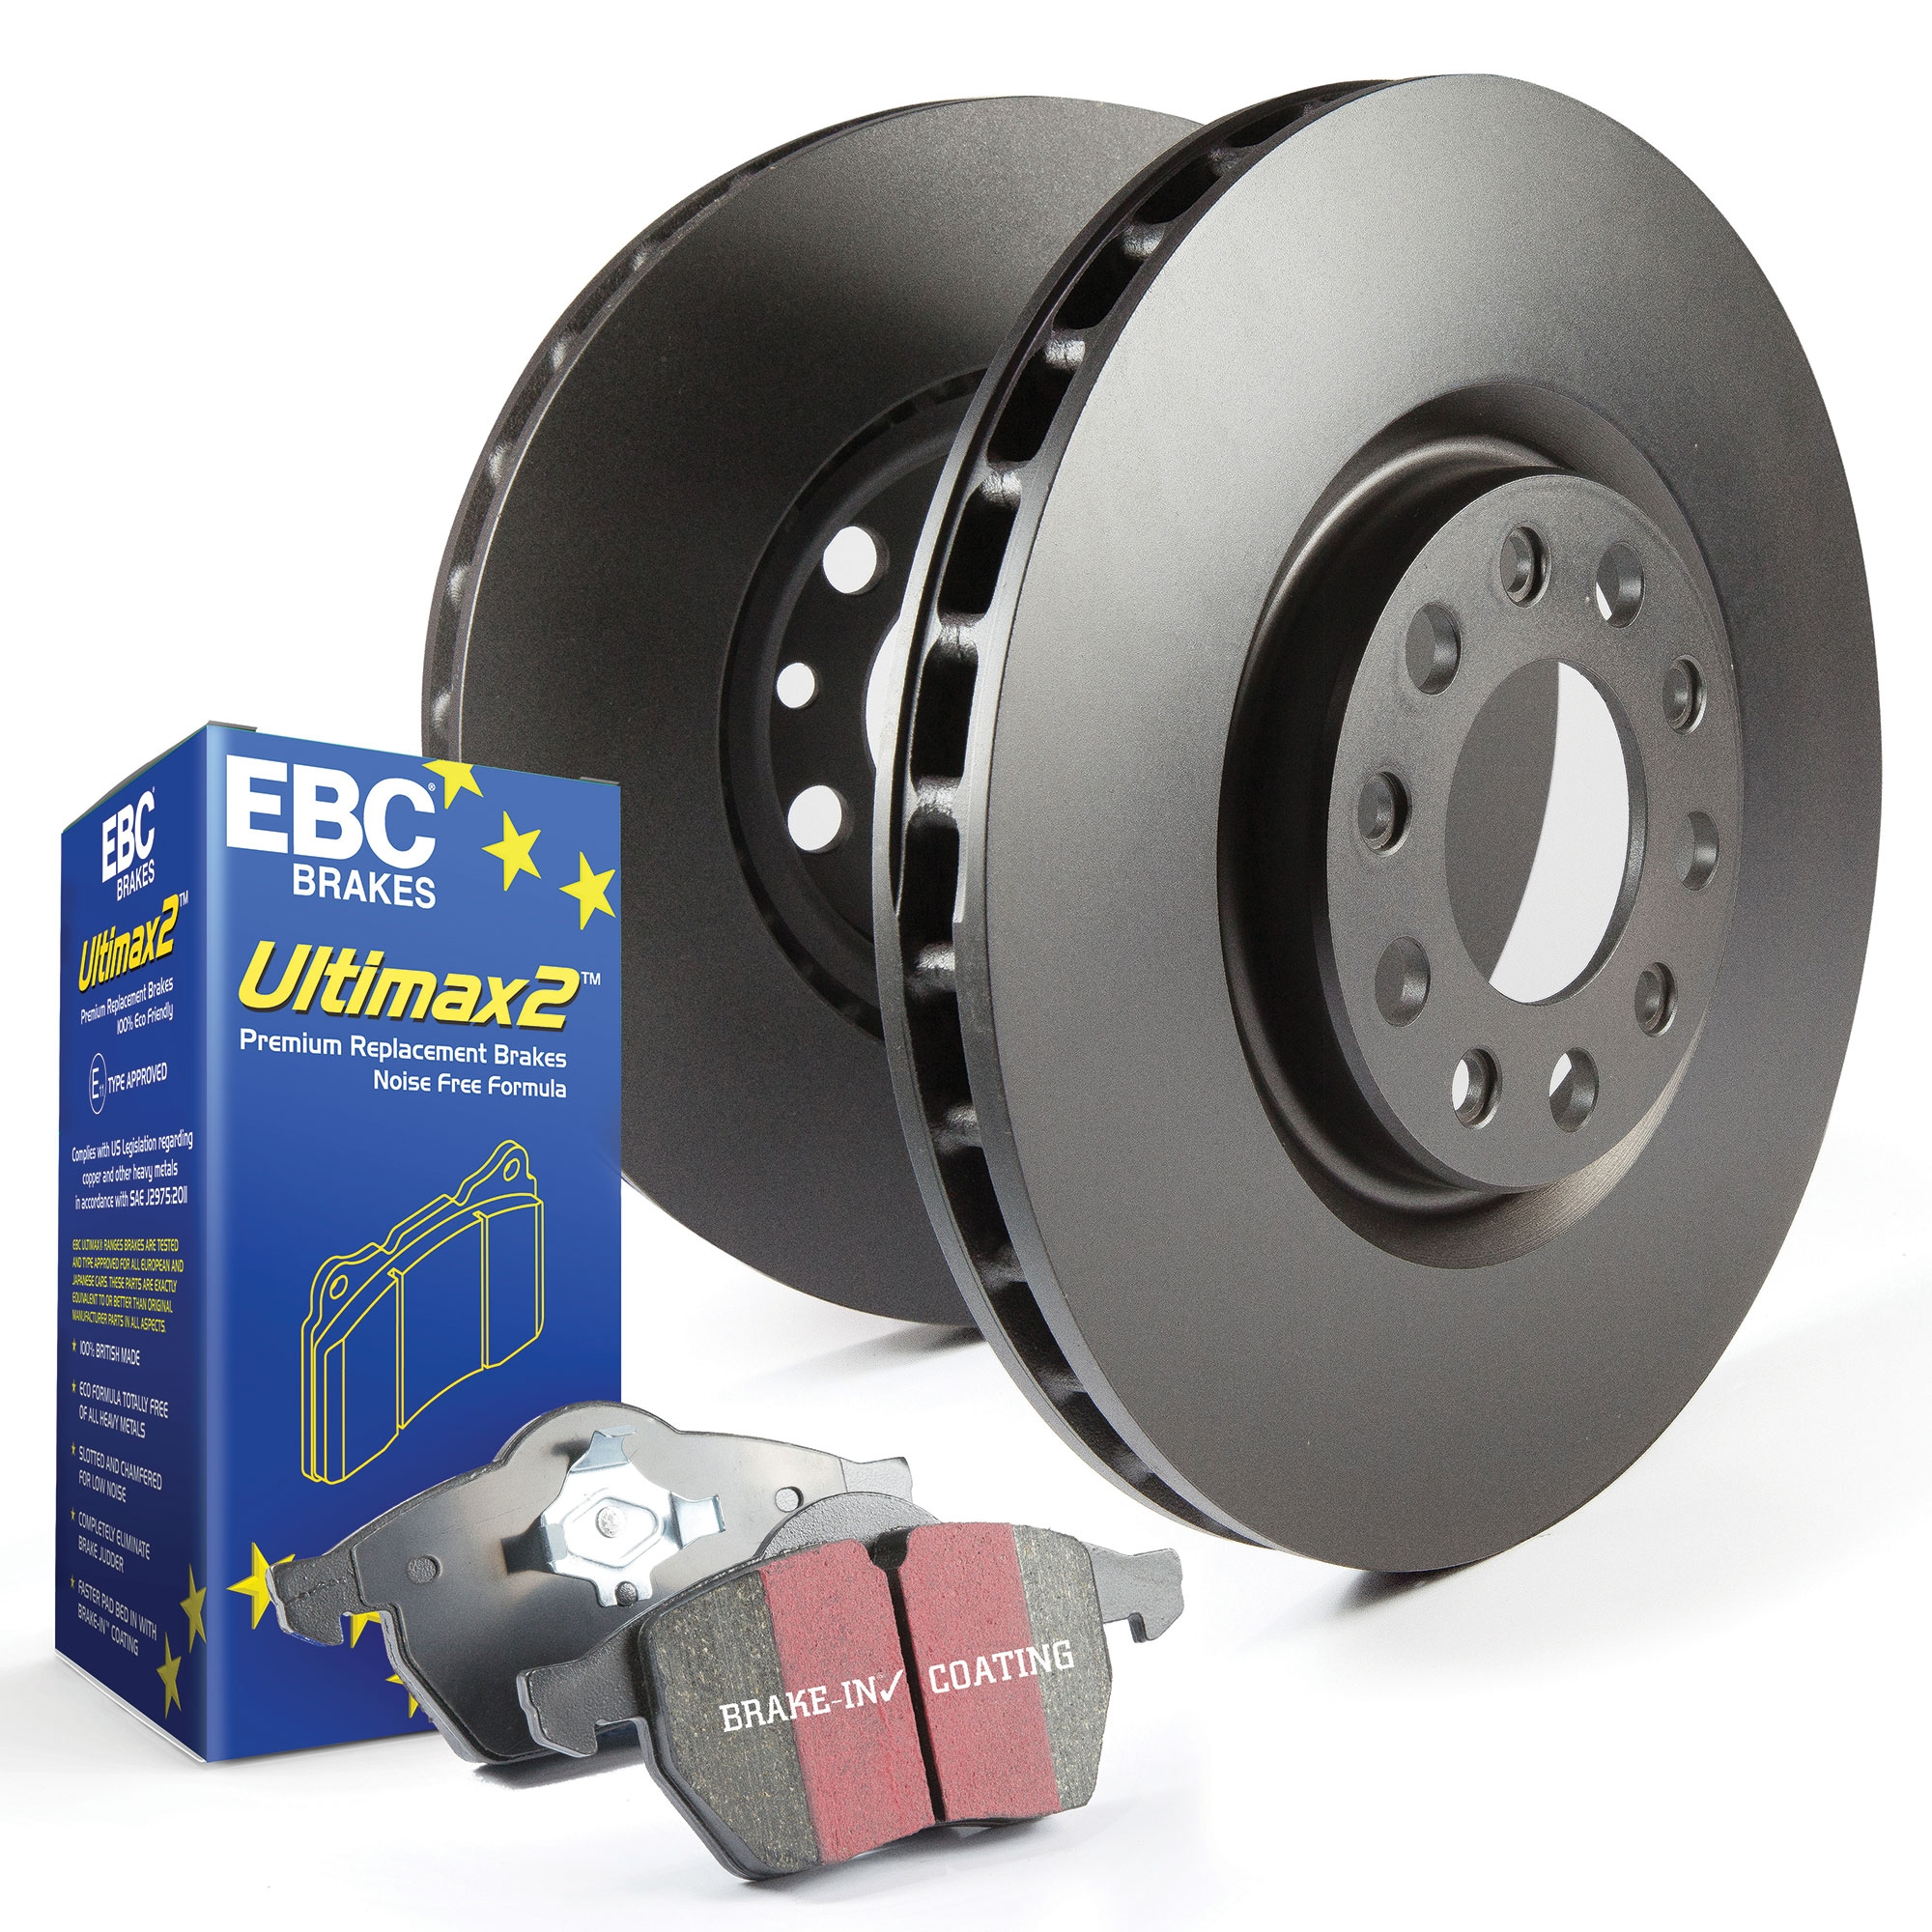 PDKF131 EBC Front OE//OEM Replacement Brake Discs and Ultimax Pads Kit